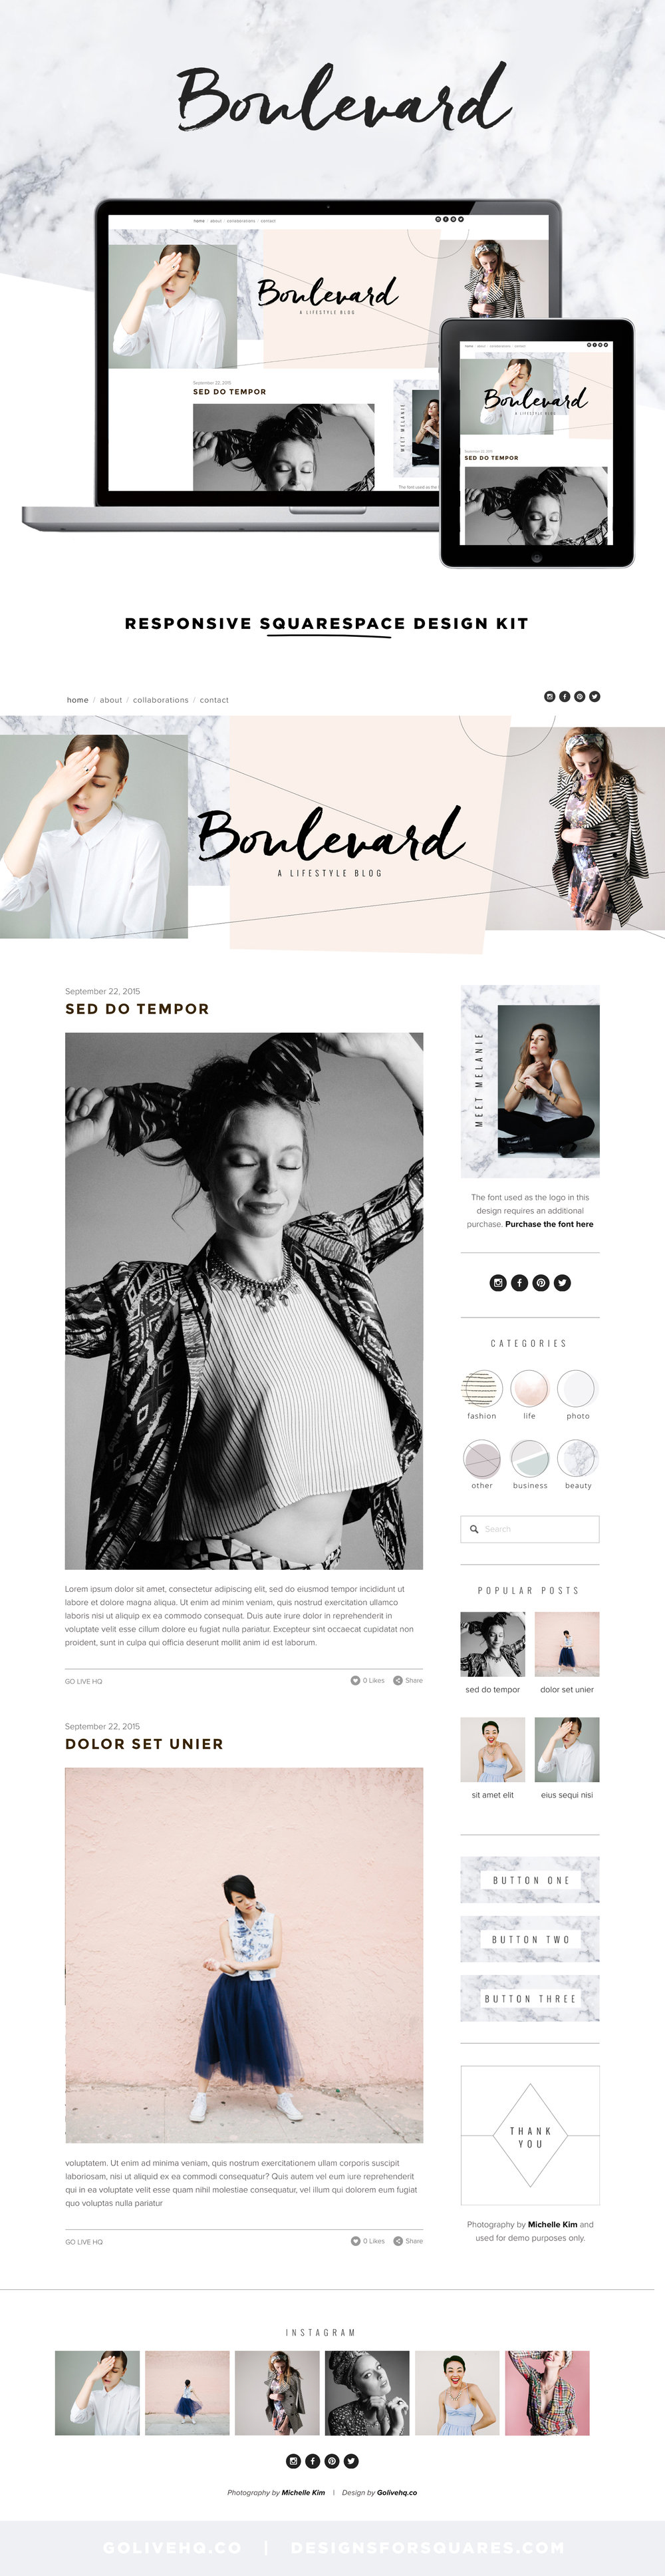 Best Squarespace Template for bloggers by Go Live Hq